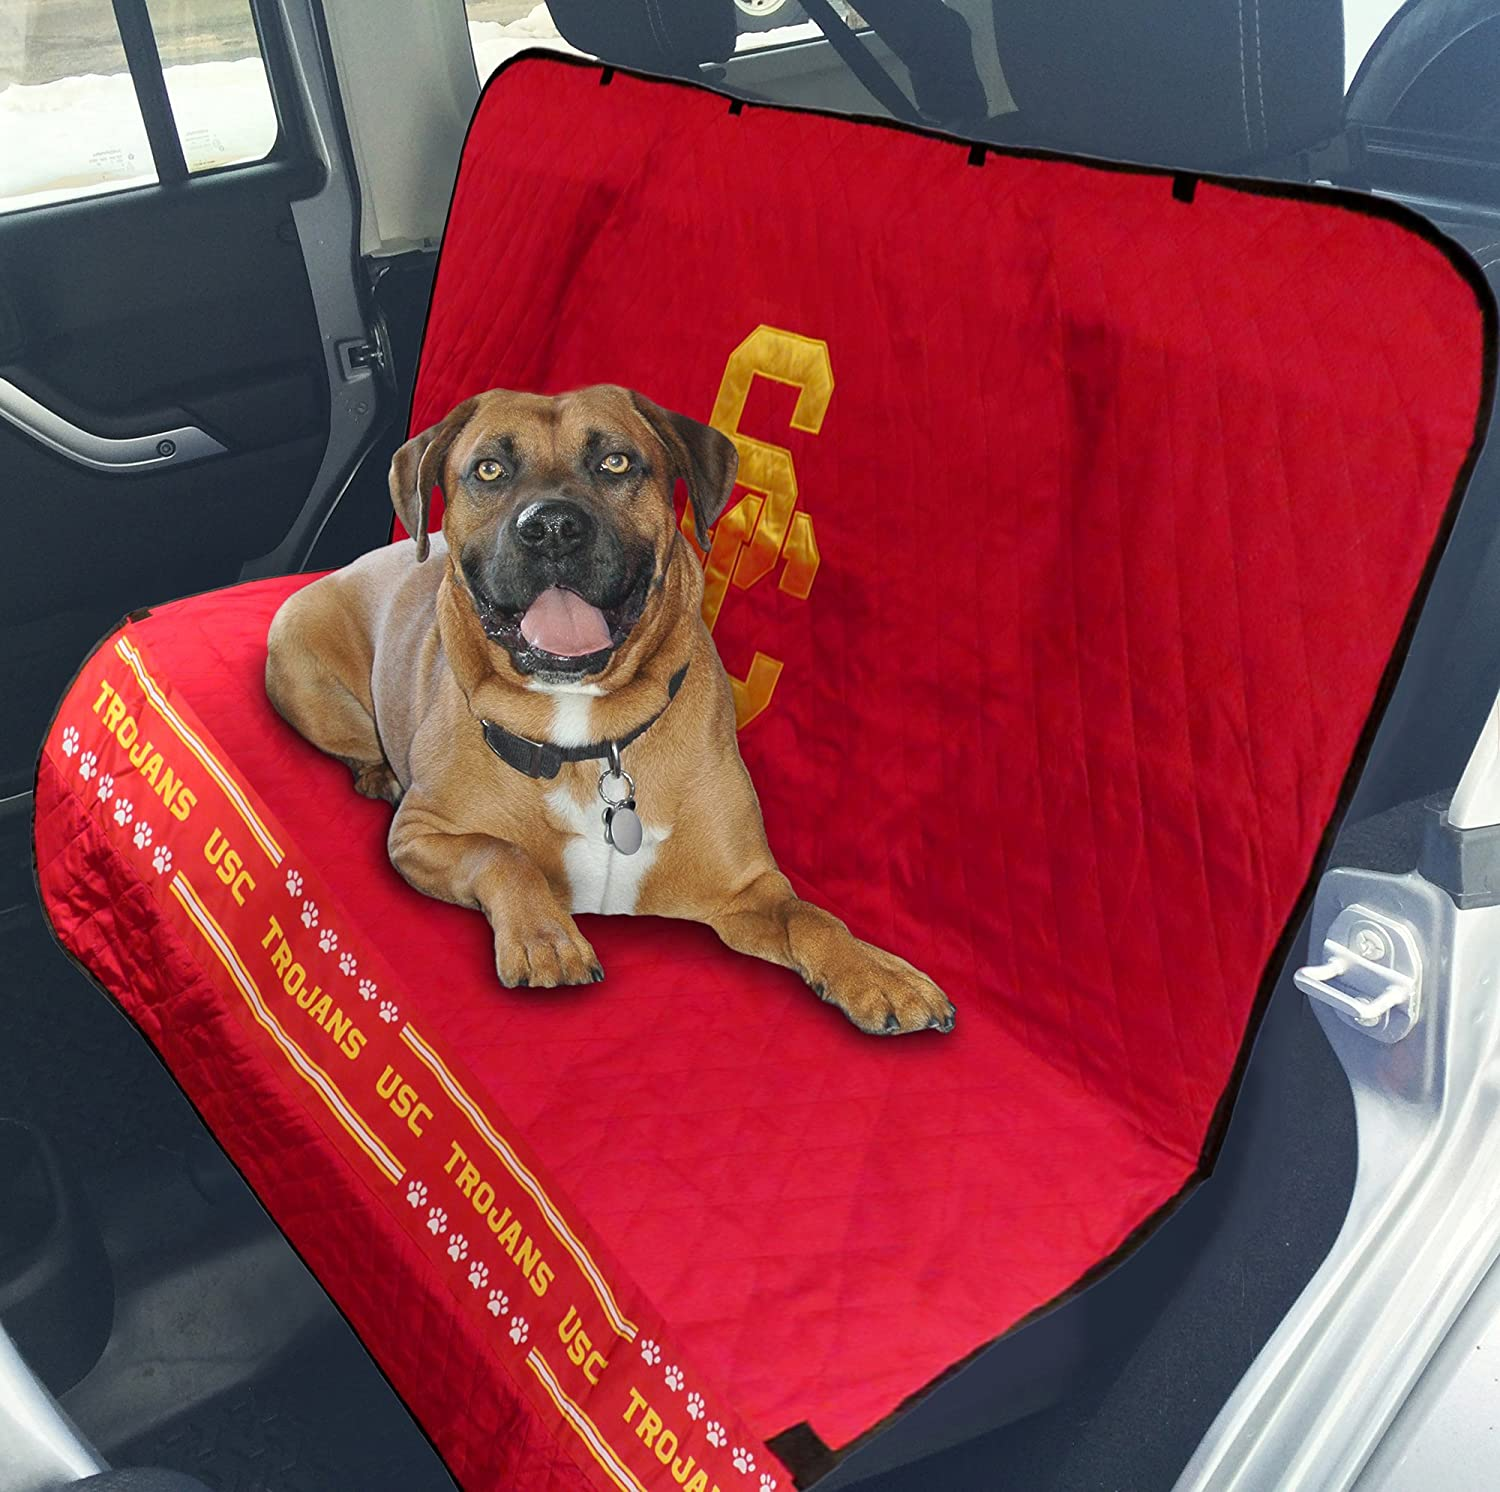 College CAR SEAT Cover. – Pet Car Seat Cover. – Dog Seat Cover. – Waterproof Seat Cover. – Football Car Seat. – Available in 23 College Teams . – Premium Pet Seat Cover